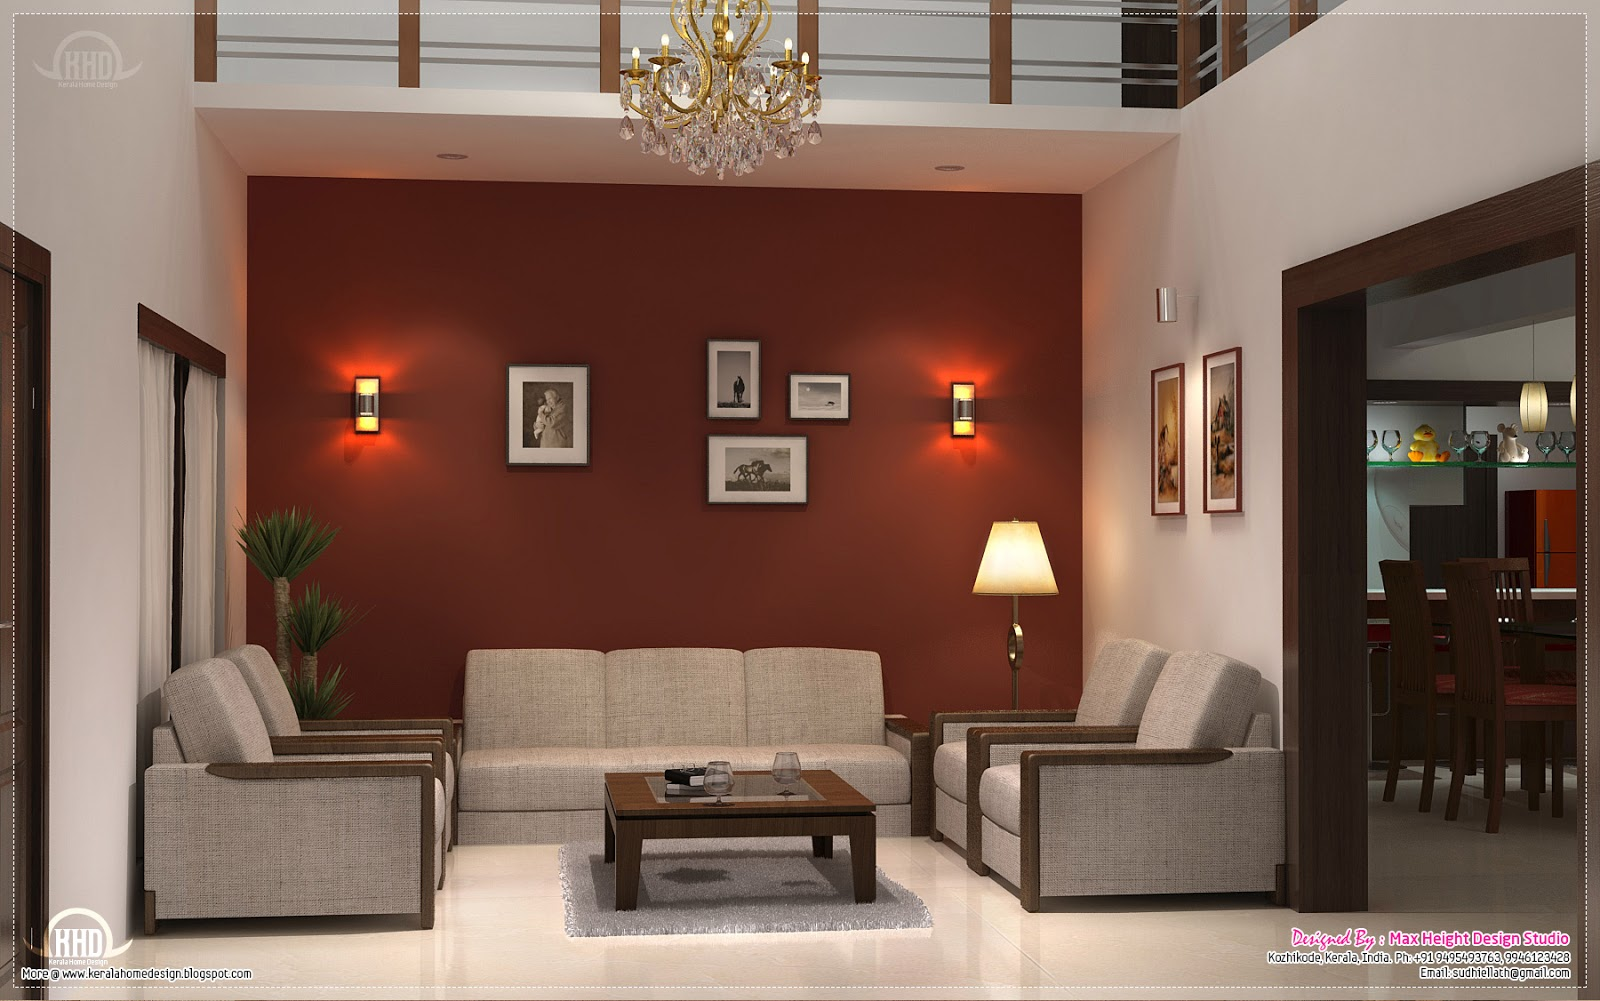 Home interior design ideas home kerala plans for Interior house design pictures